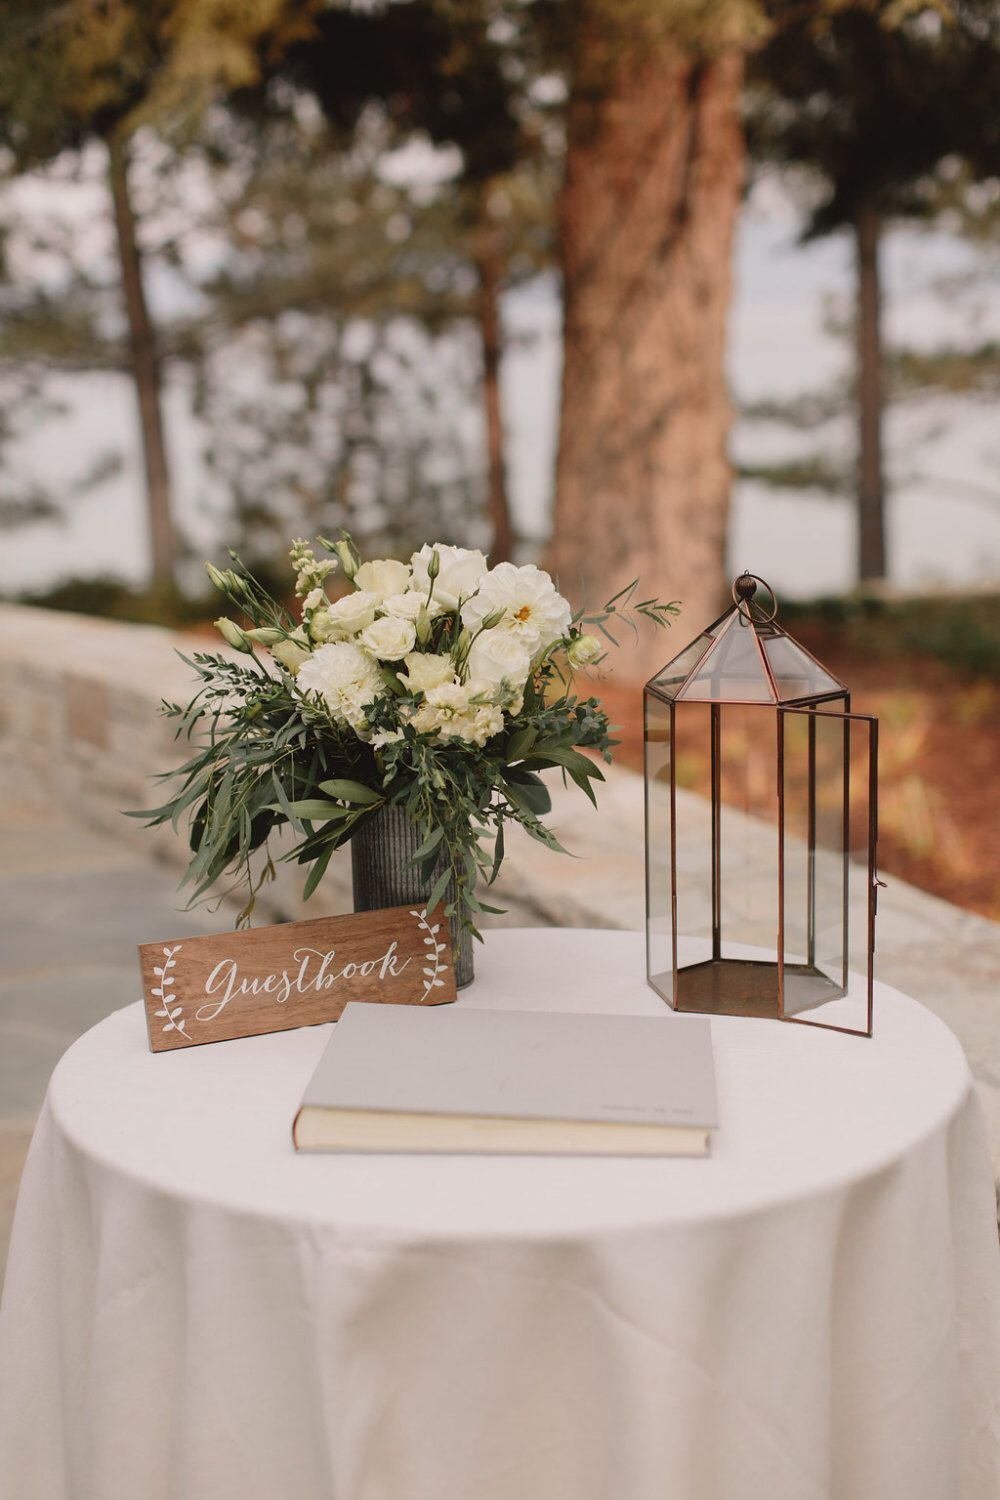 Super Cute Set Up For The Guestbook Weddingtabledecorations Wedding Weddinggues Wedding Guest Book Table Wedding Guest Book Sign Simple Wedding Decorations